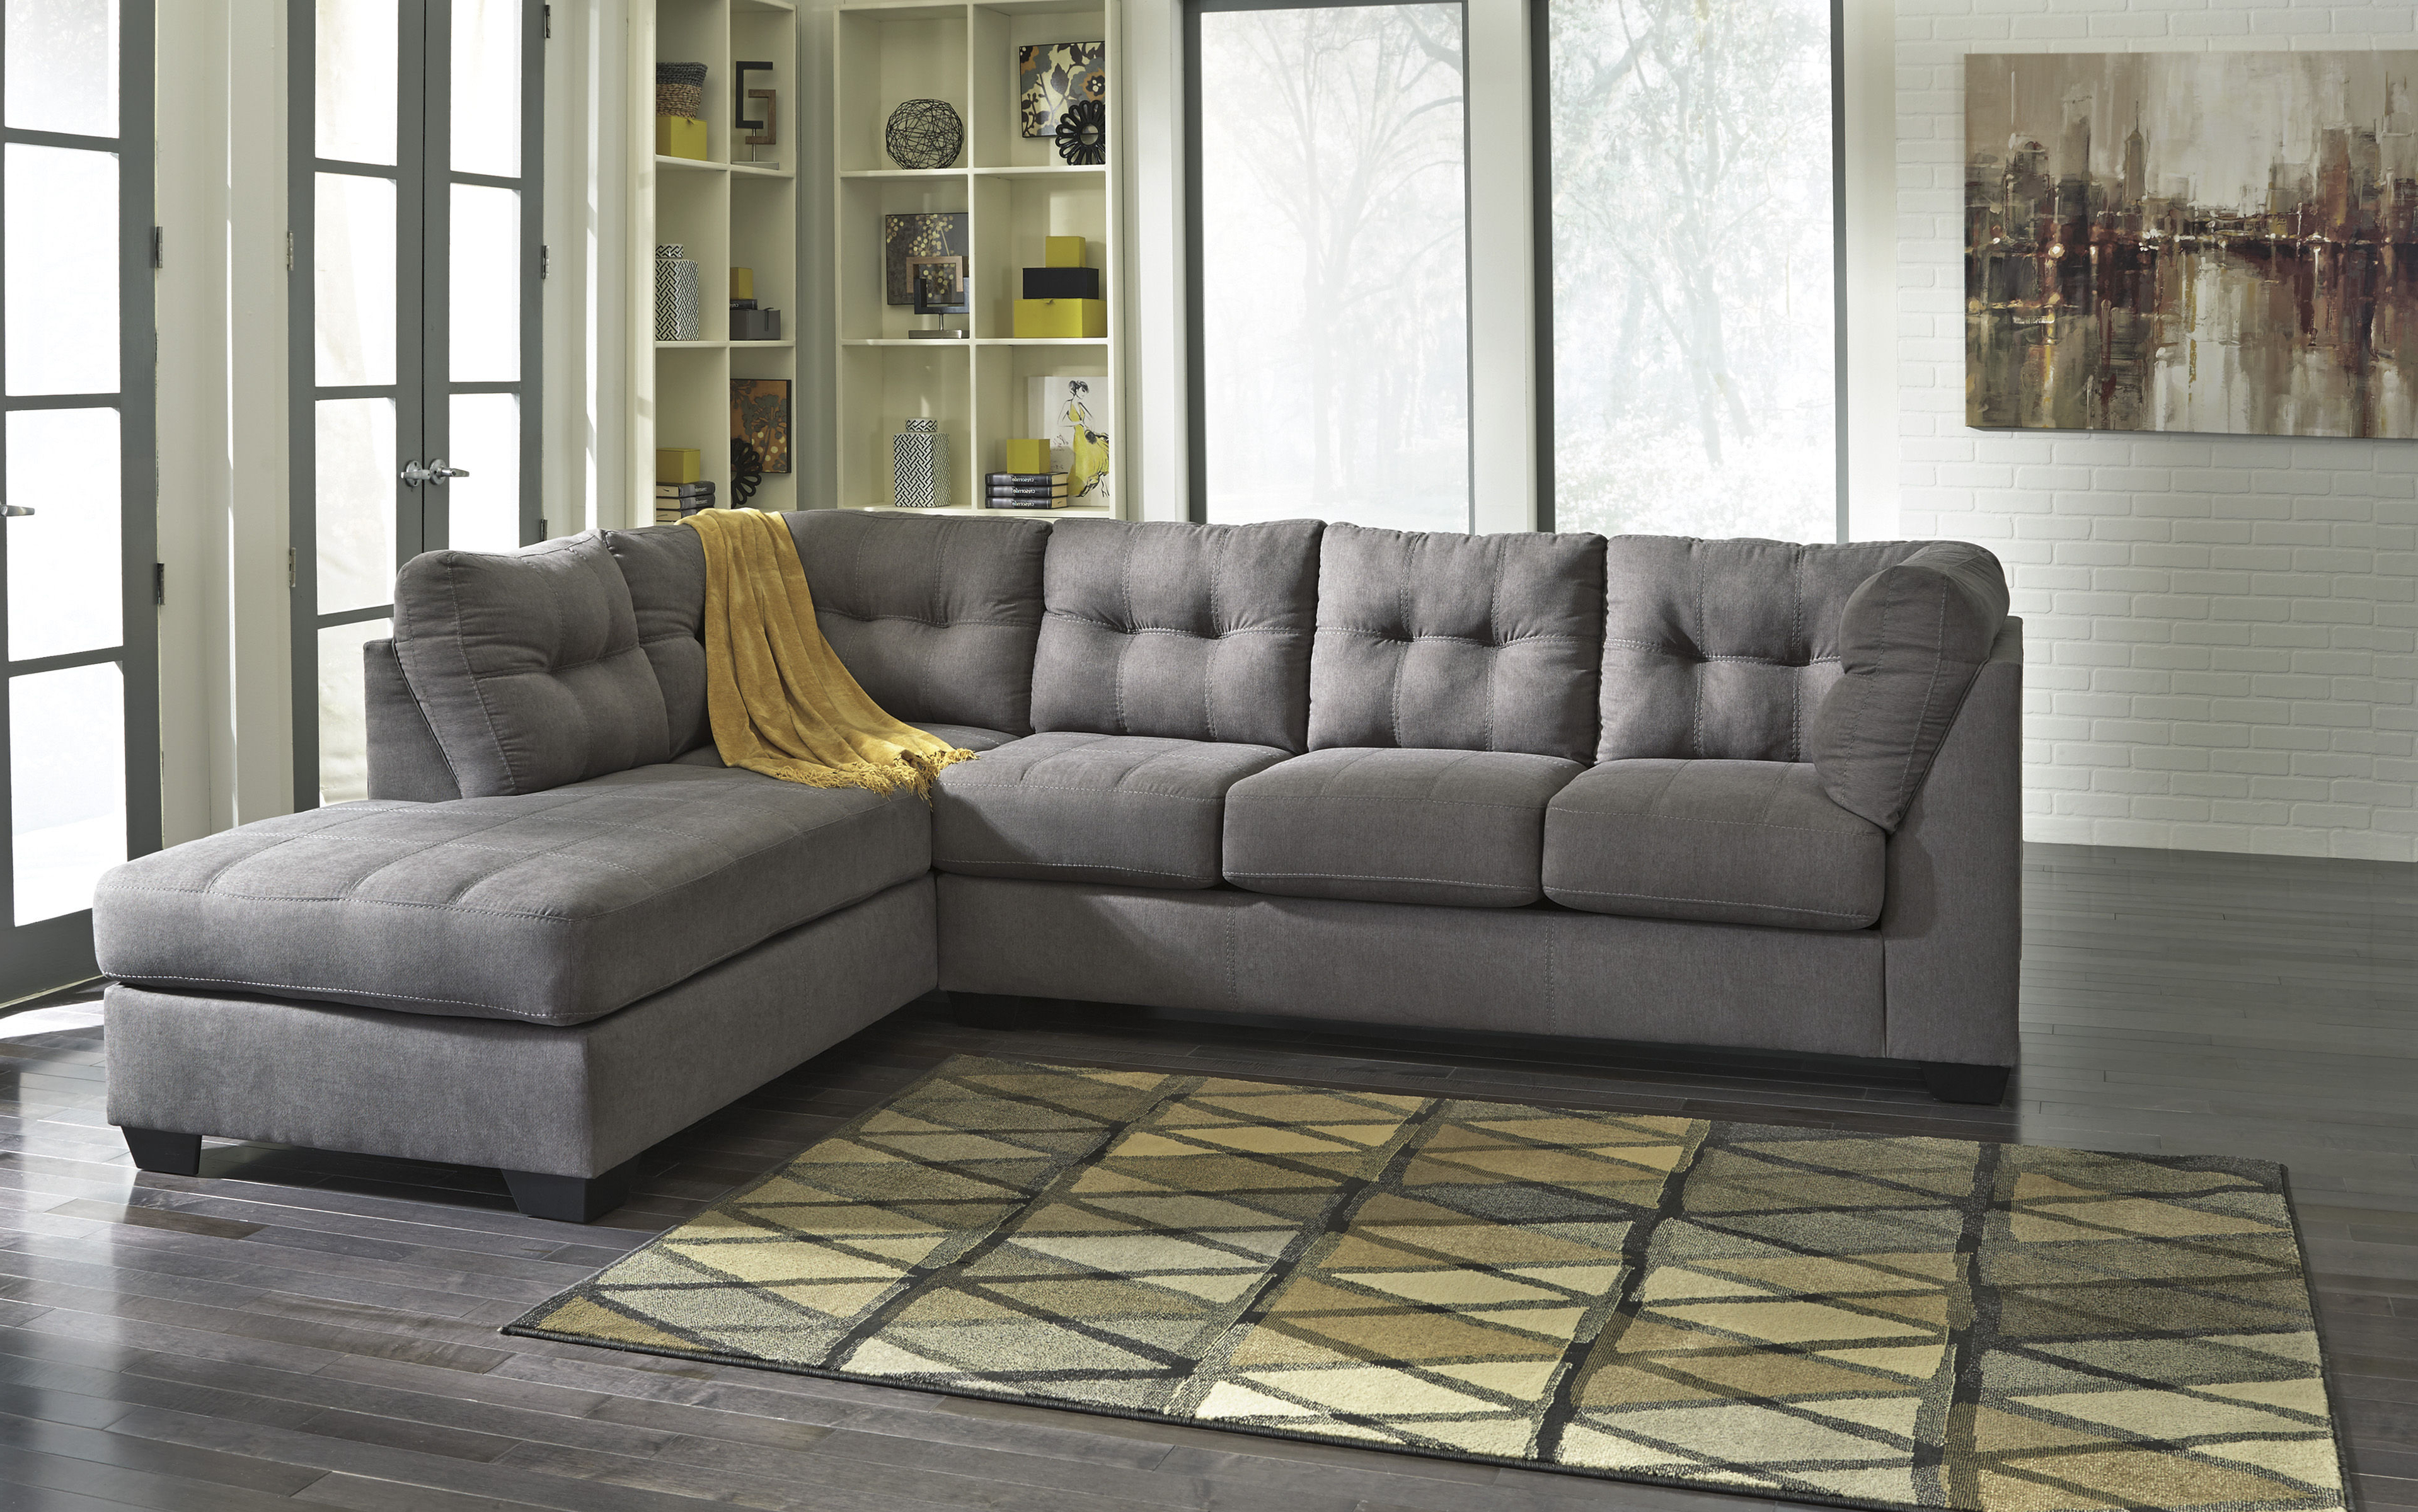 Ashley Furniture Maier Charcoal Raf Chaise Sectional (View 2 of 20)